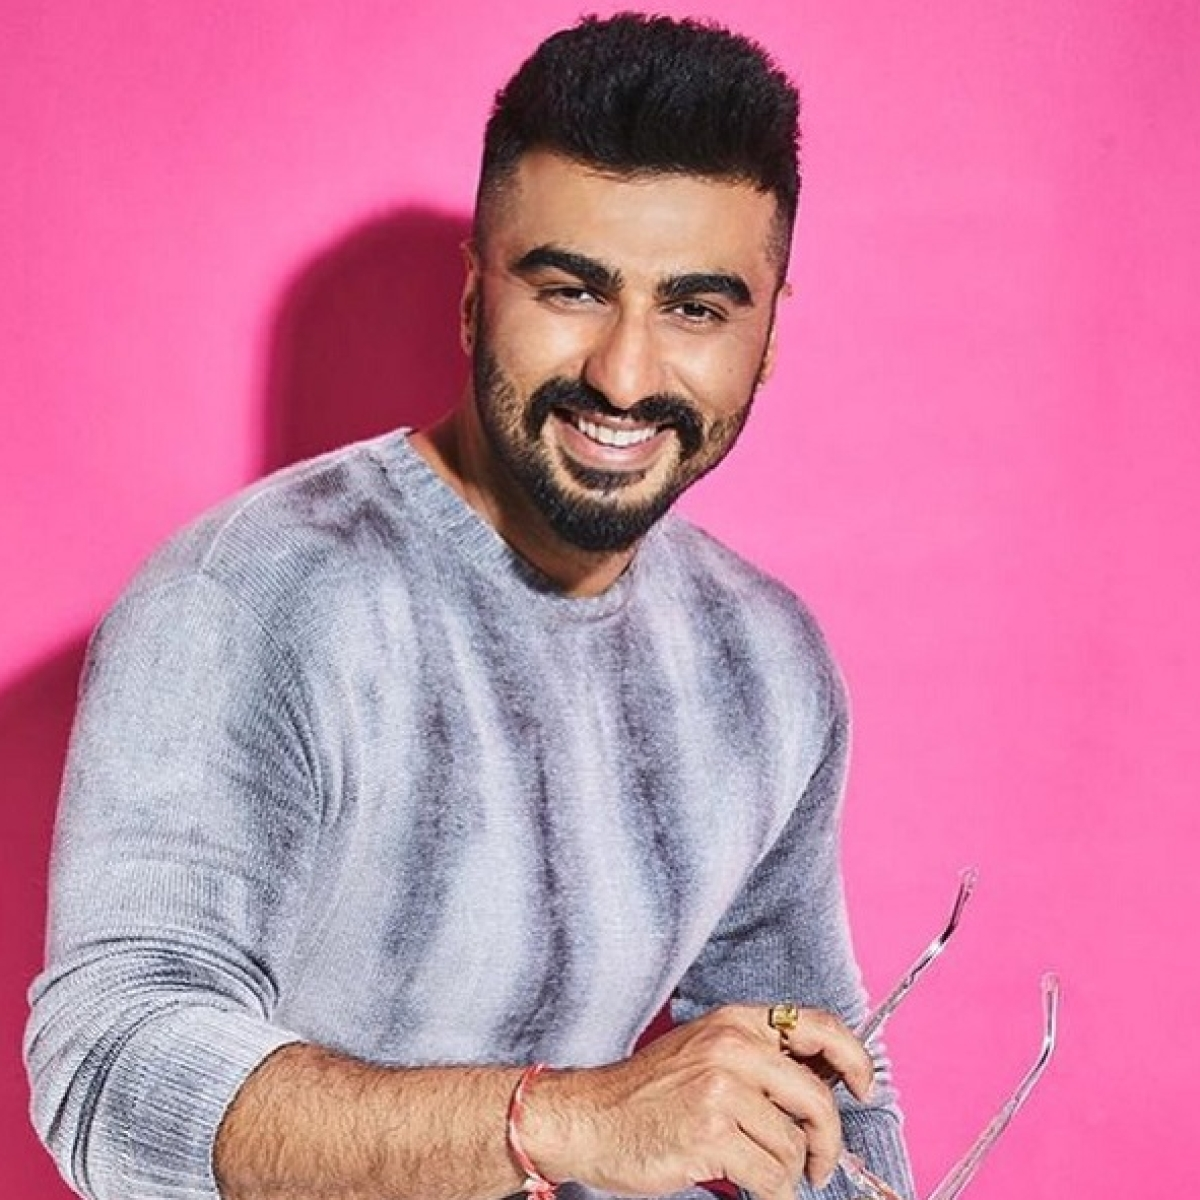 Arjun Kapoor wants to play a detective on screen